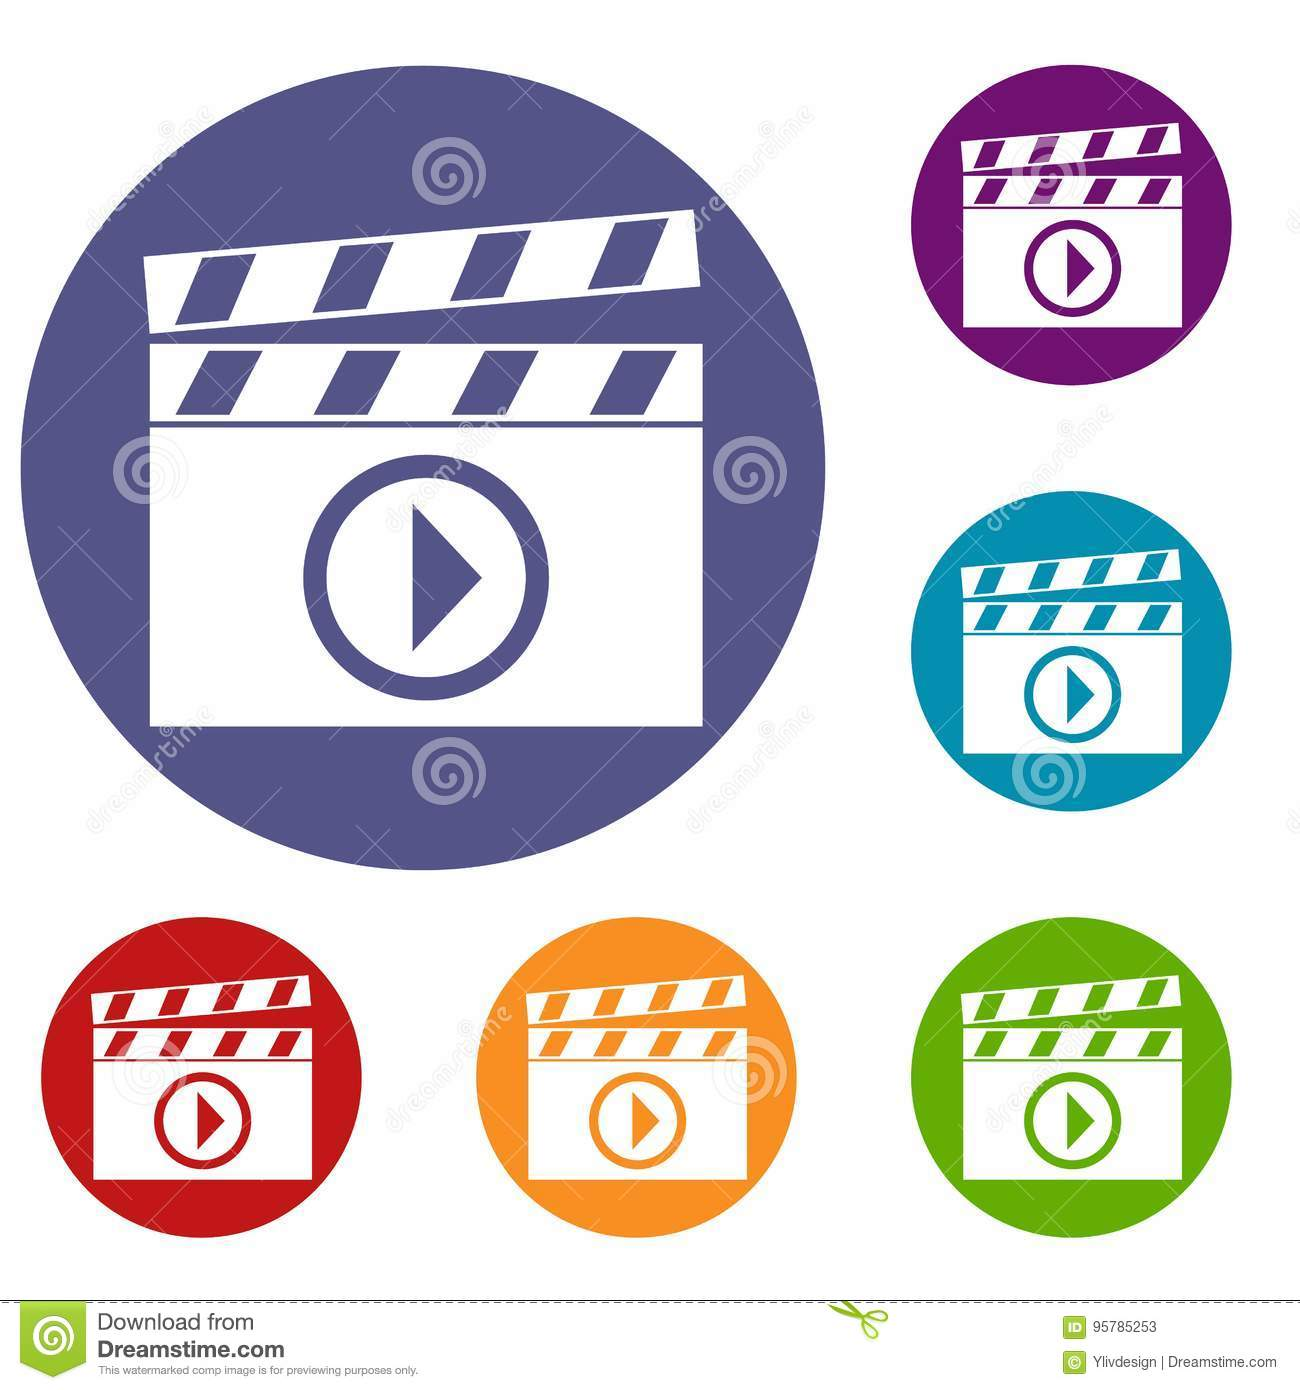 Clapperboard for movie shooting icons set stock vector image clapperboard for movie shooting icons set biocorpaavc